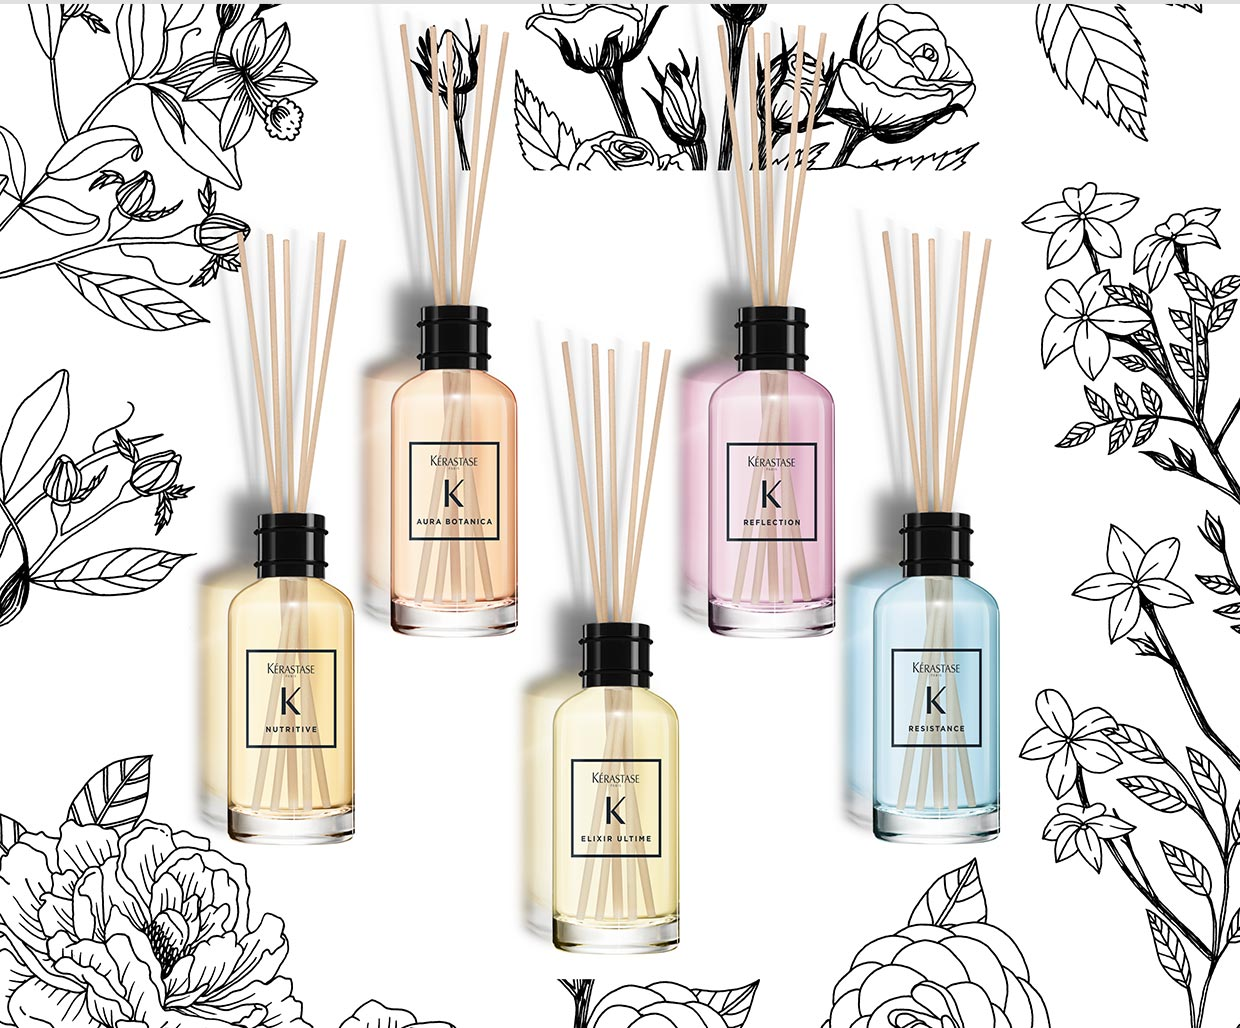 Complimentary Home Fragrance Diffuser